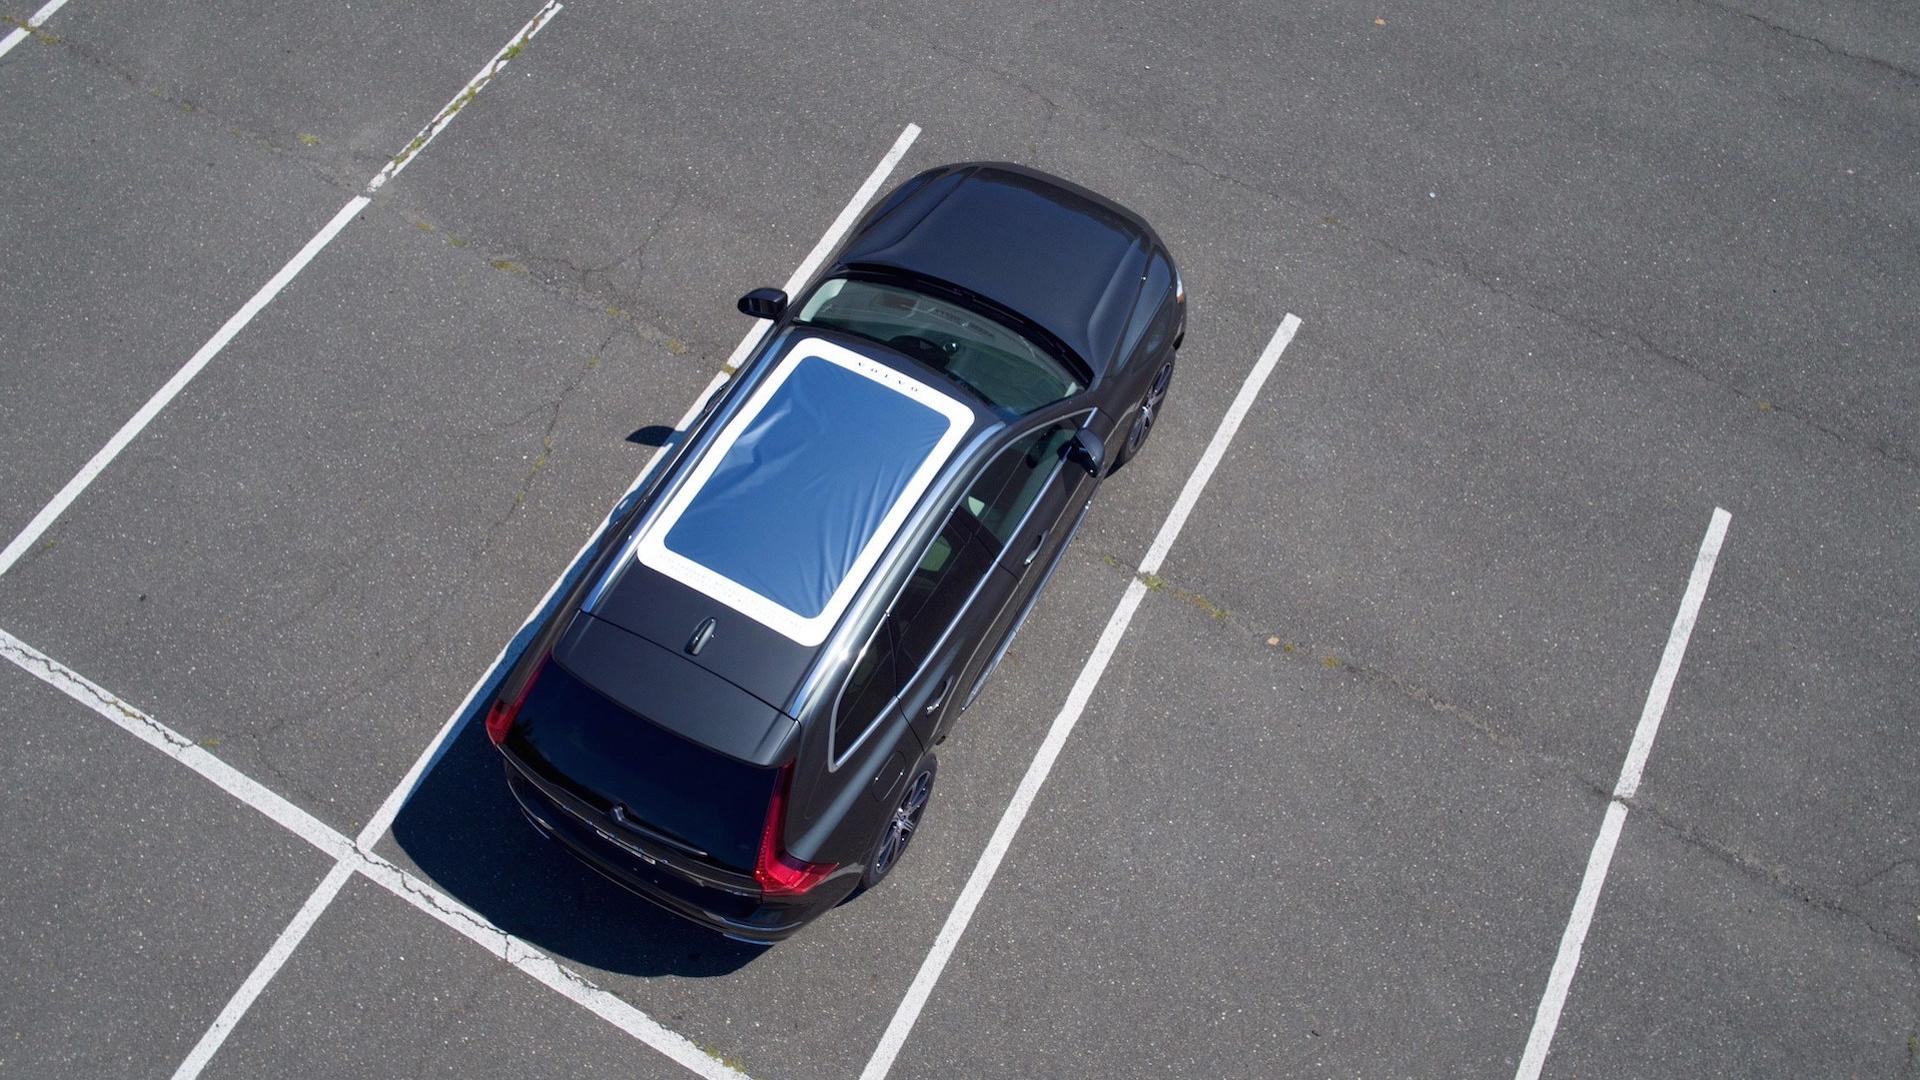 volvo equips xc60 with eclipse friendly panoramic moonroof viewer